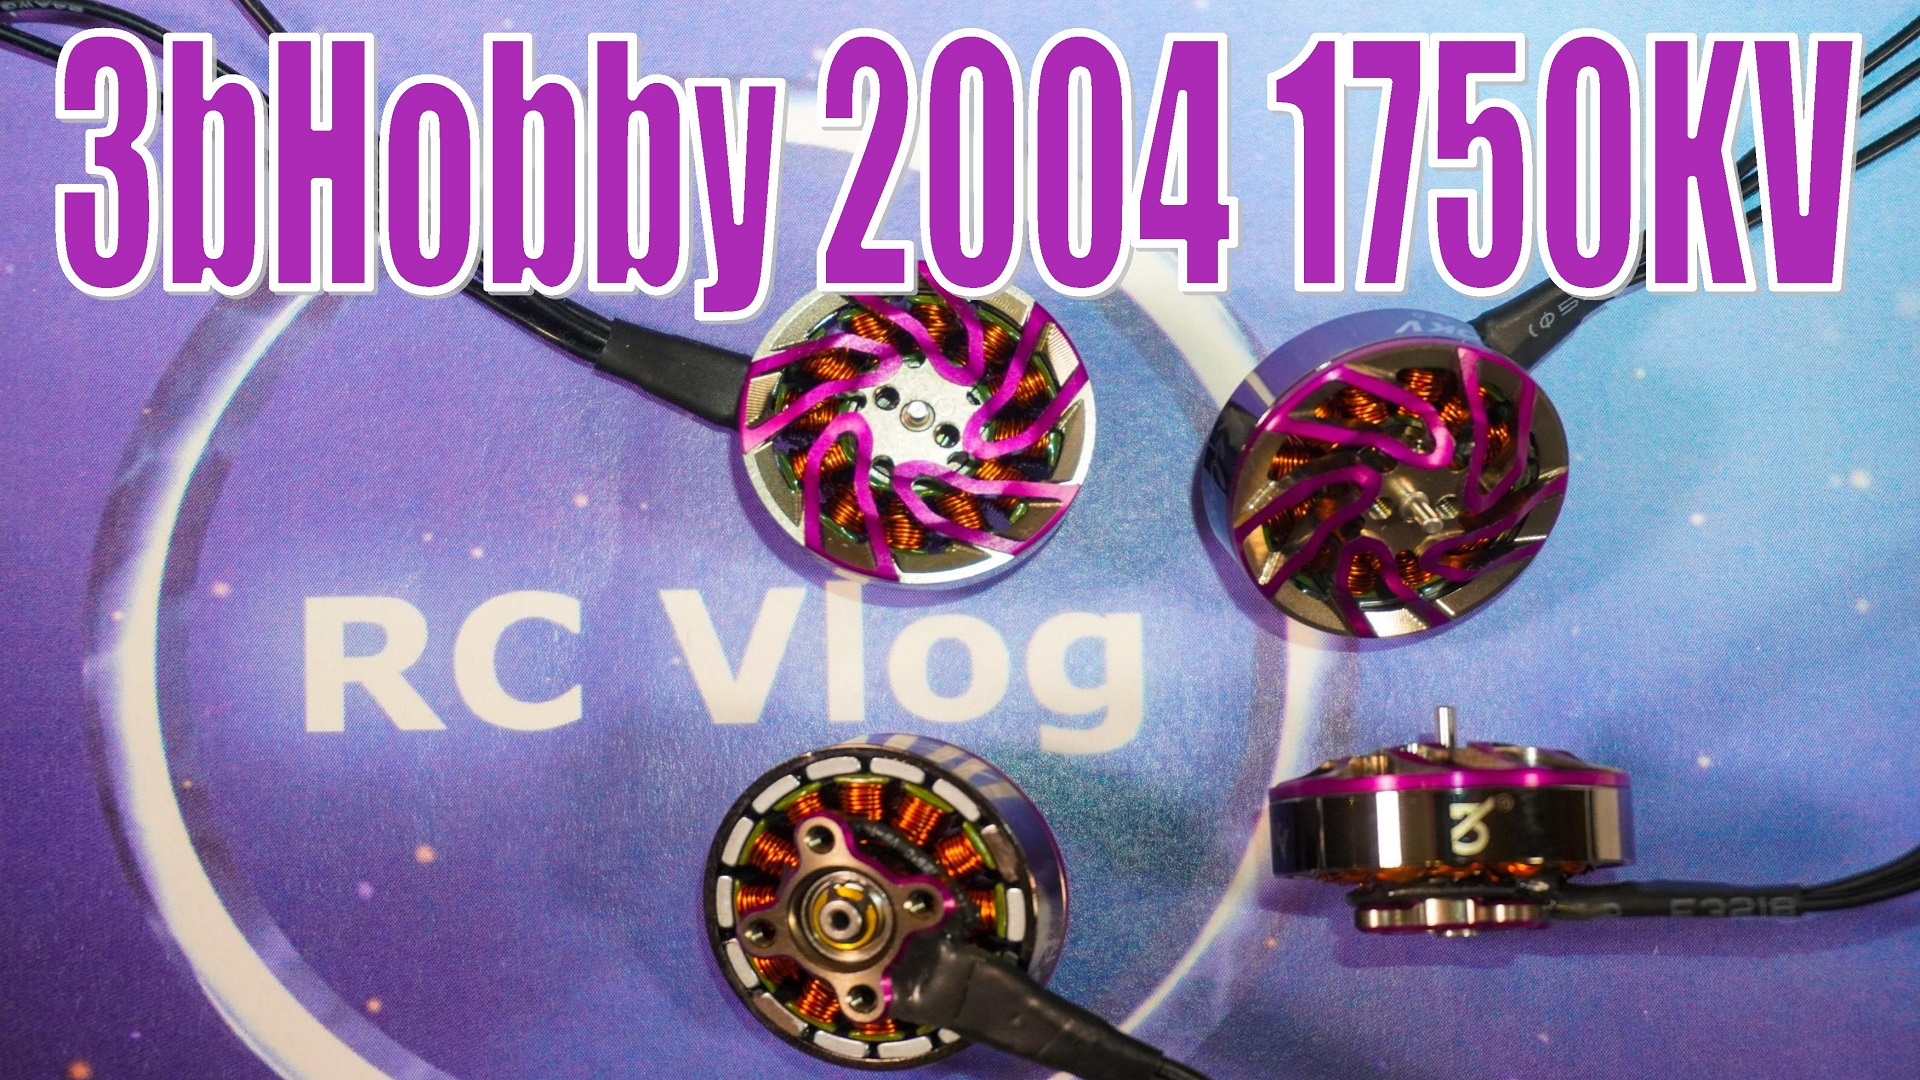 3bHobby 2004 RC Brushless Motor 1750KV 3100KV 4S 6S Lipo Battery 5inch Propeller 20A 40A ESC 190-230mm FPV Drone